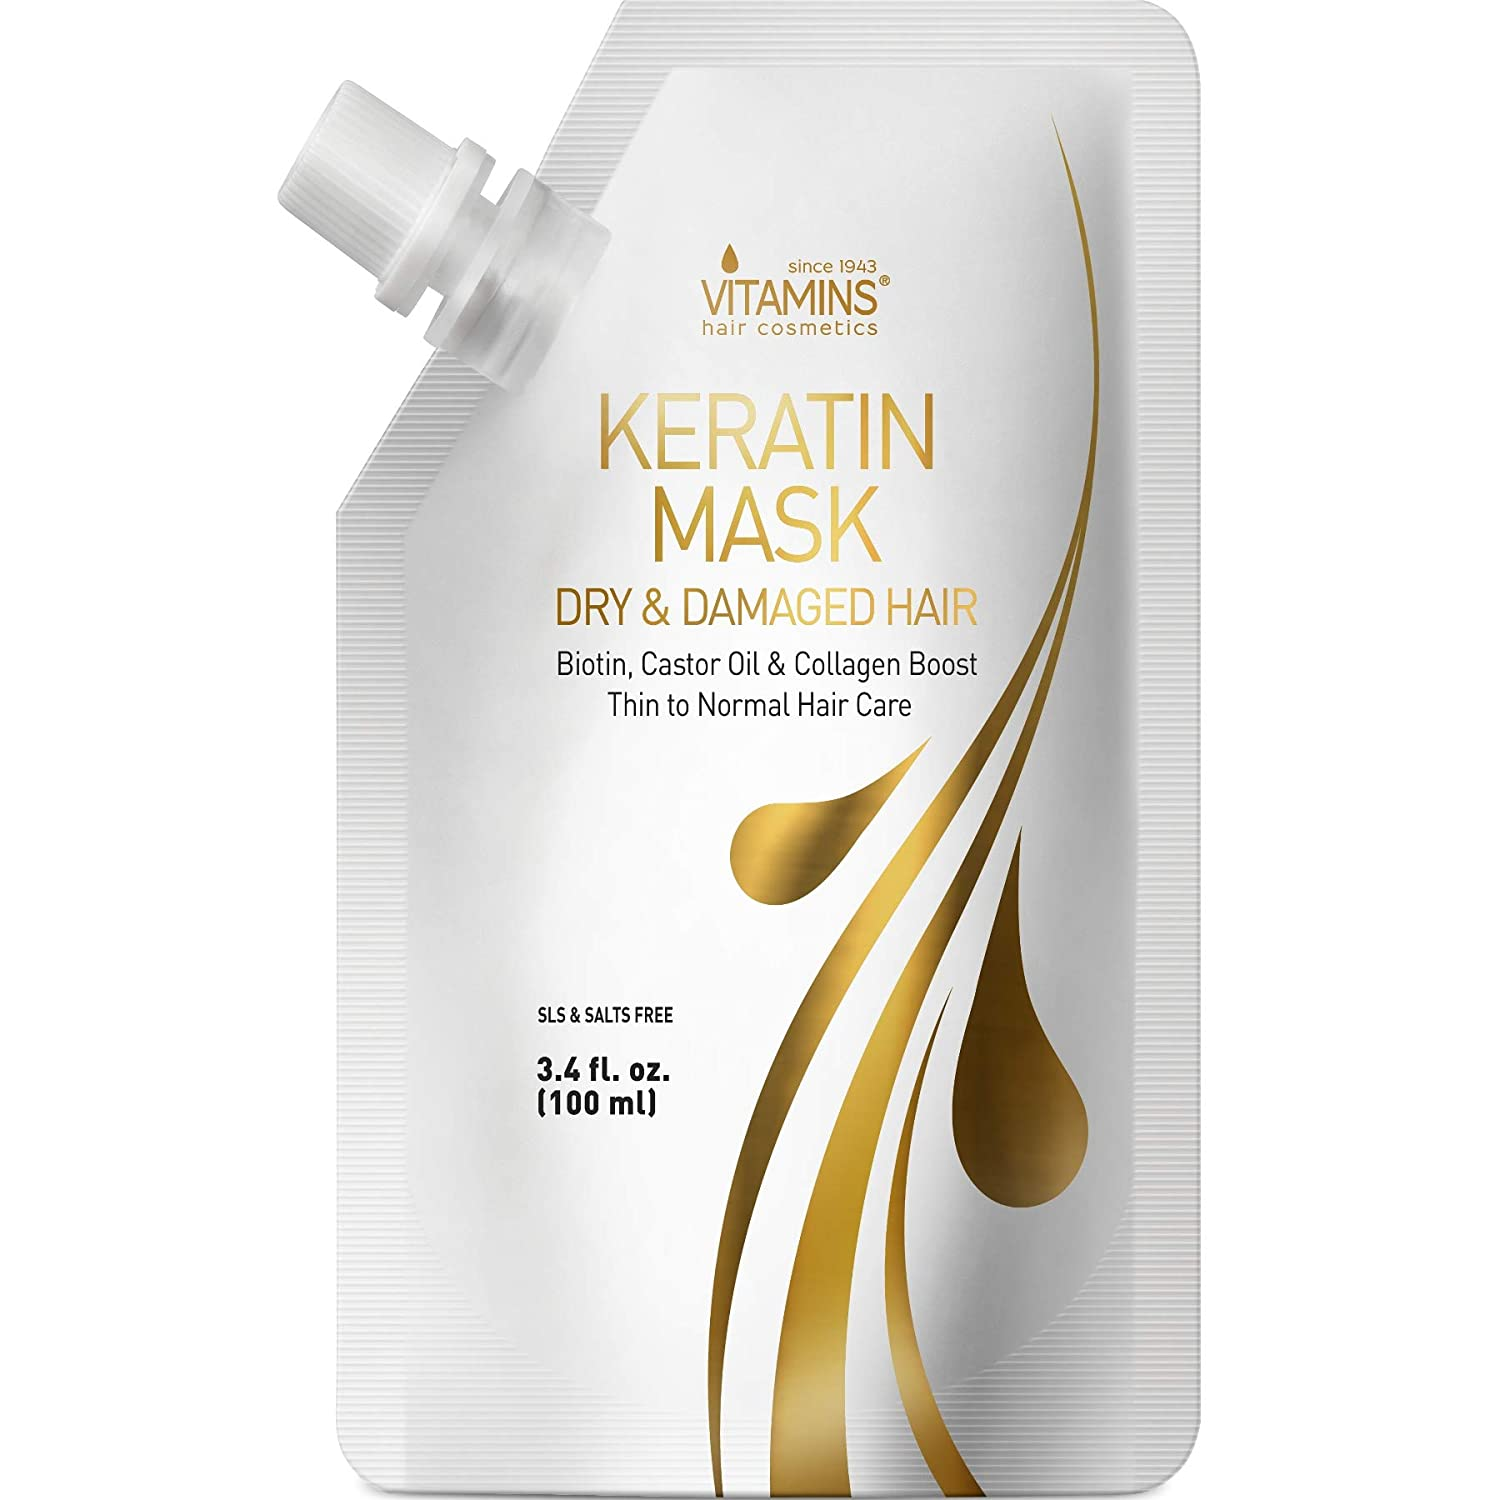 Vitamins Keratin Hair Ranking integrated 1st place Mask Deep - Biotin wit Protein Conditioner Outlet sale feature